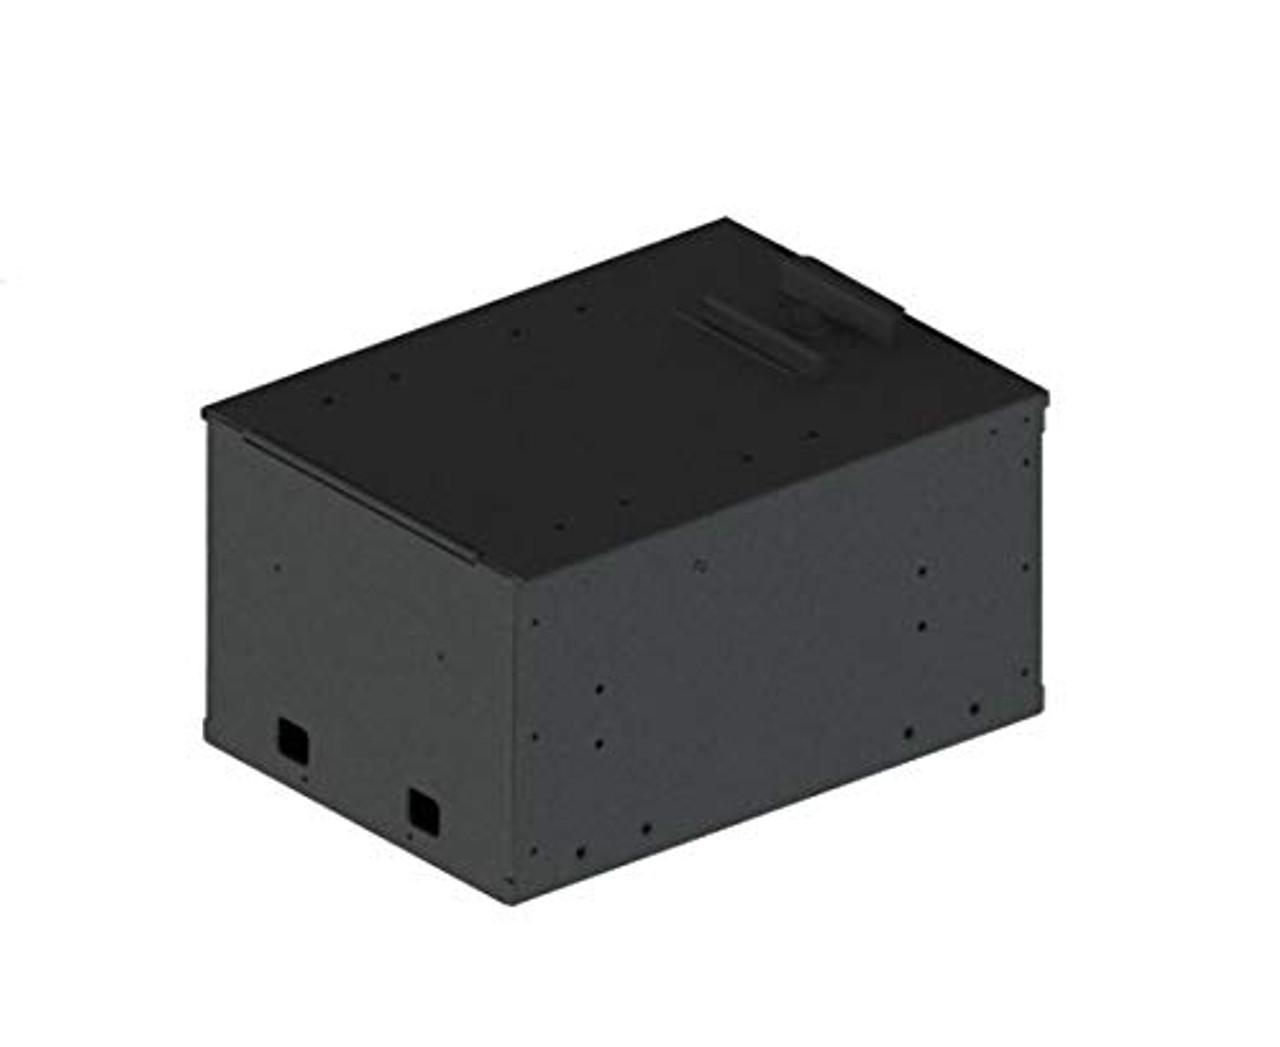 Small 9 Inch Tall Workstation Box | 0309X8VN7H5